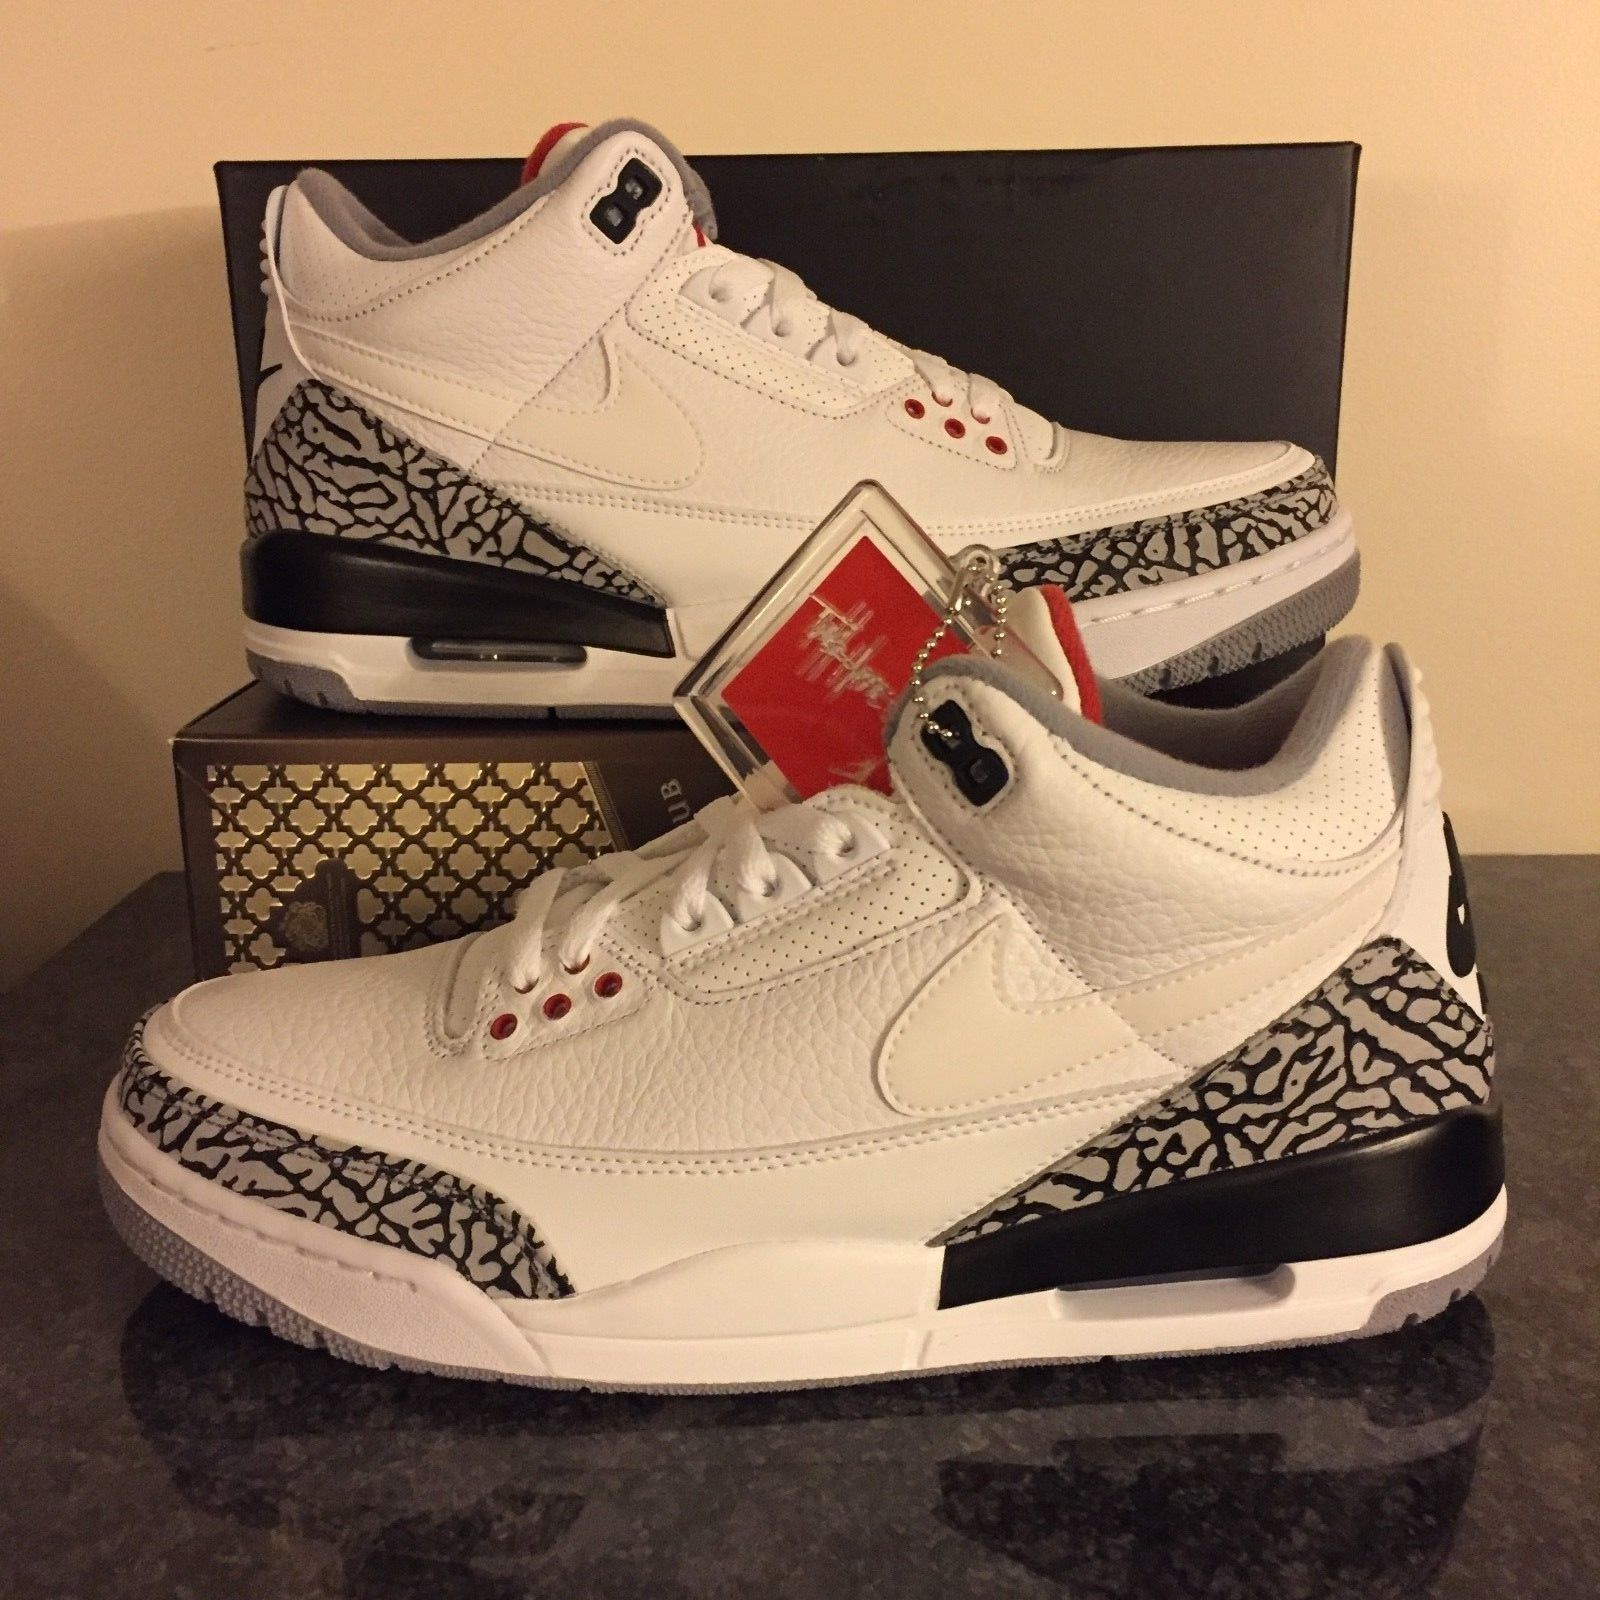 4ae7dfd7f069c7 100% Authentic Air Jordan 3 JTH Justin Timberlake Tinker Hatfield 88 Super  Bowl